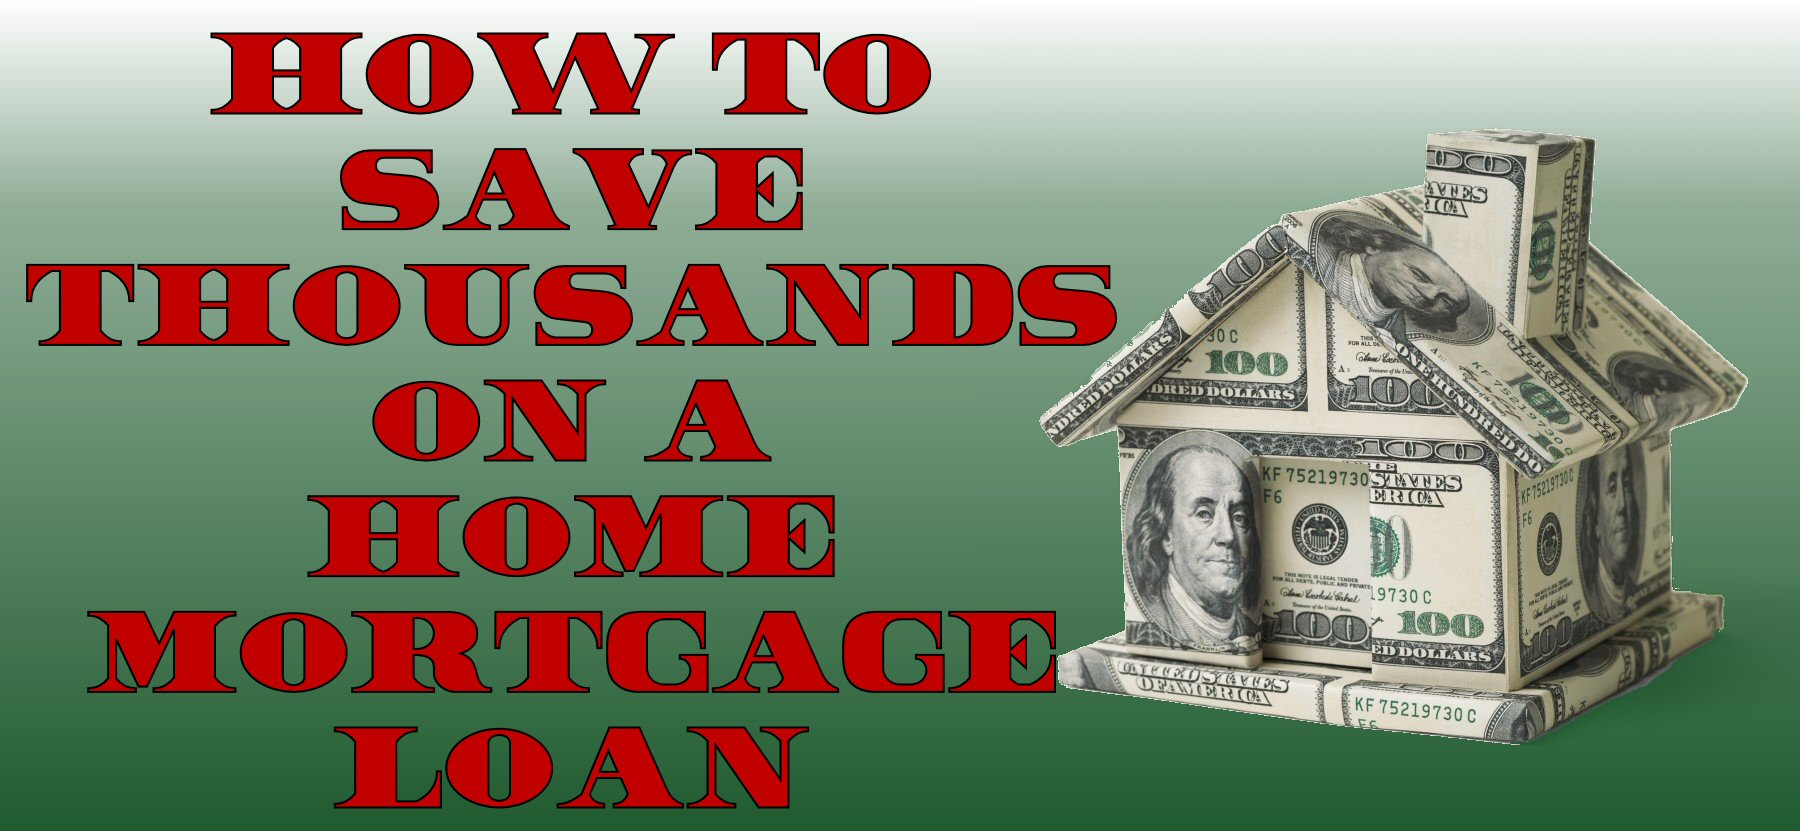 How To Save Thousands On a Home Loan Mortgage #Finance #Savings